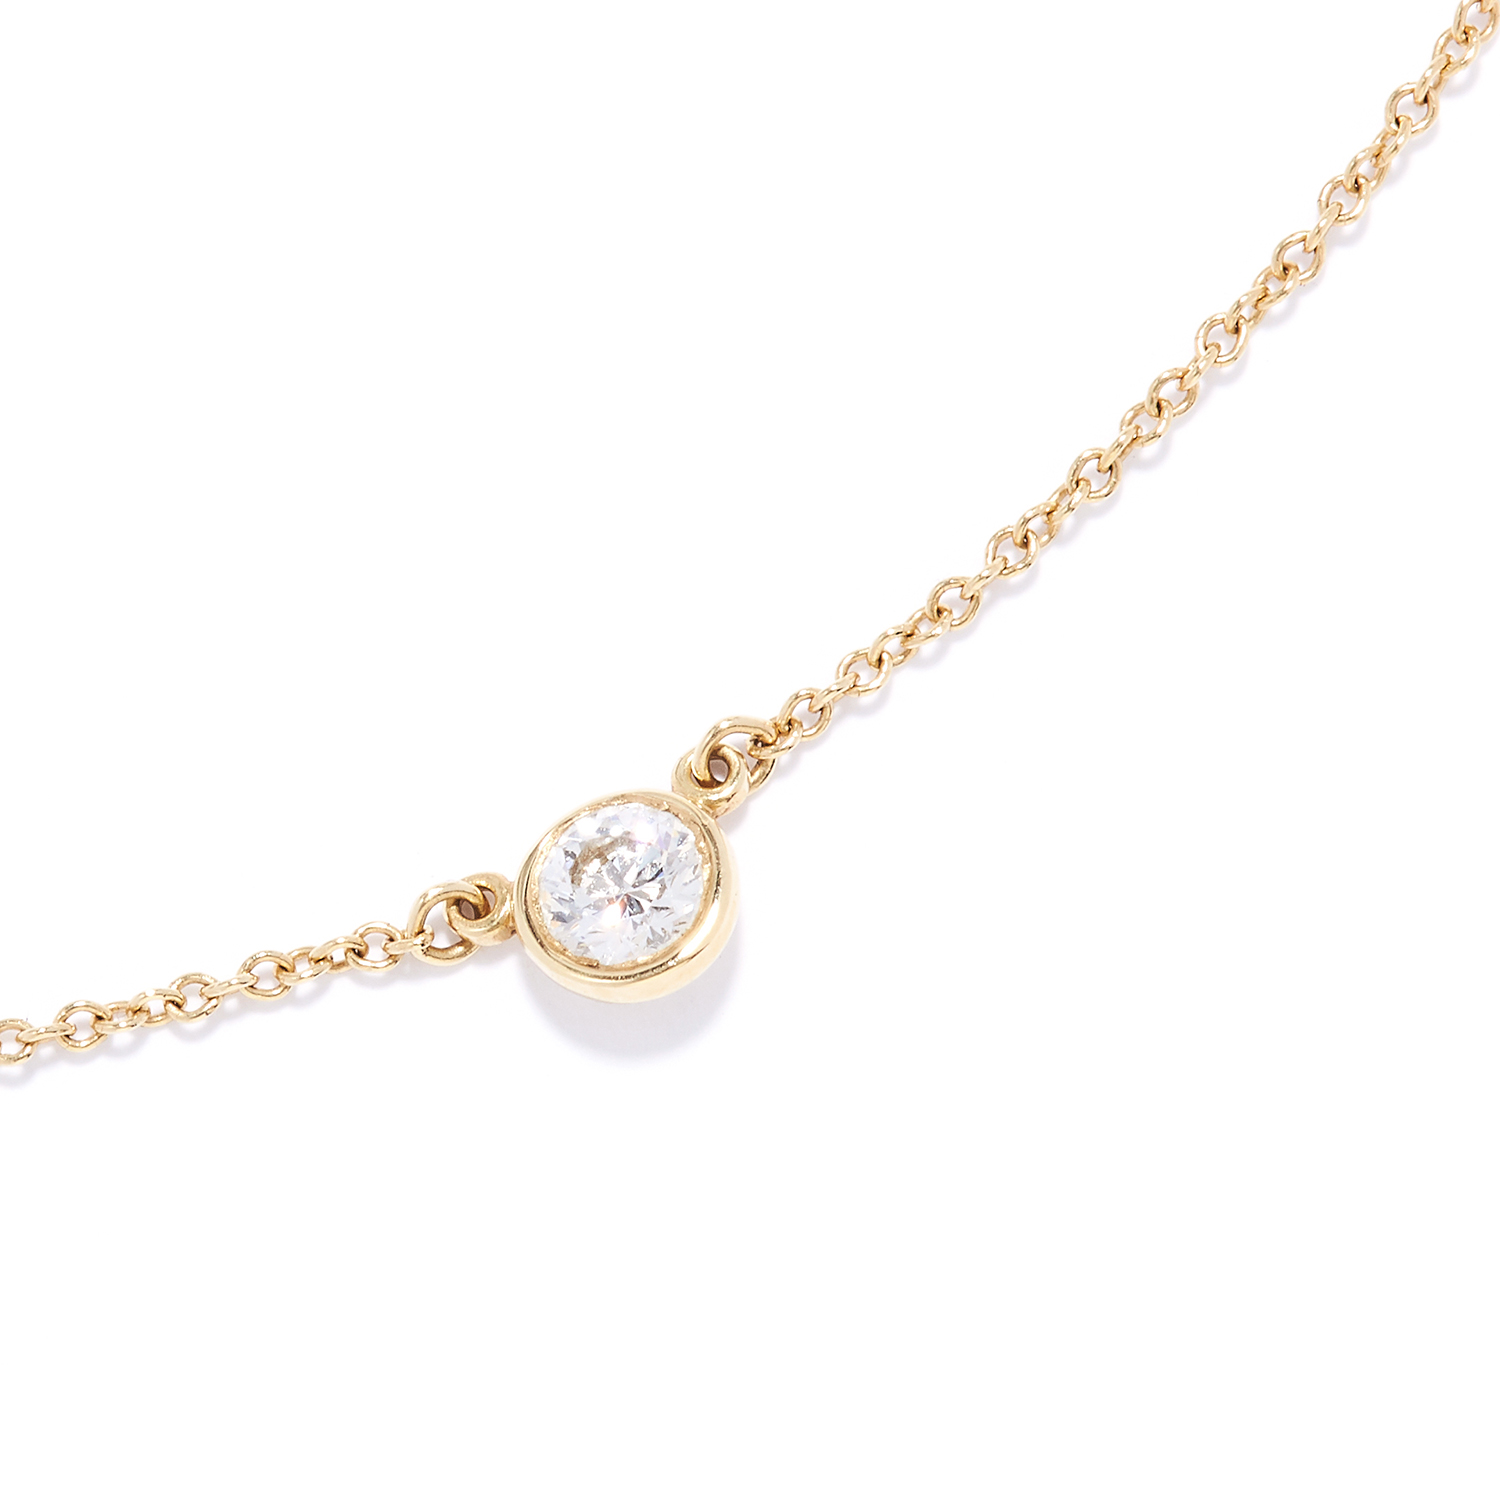 Los 57 - 'DIAMONDS BY THE YARD' PENDANT, ELSA PERETTI FOR TIFFANY & CO in 18ct yellow gold, set with a